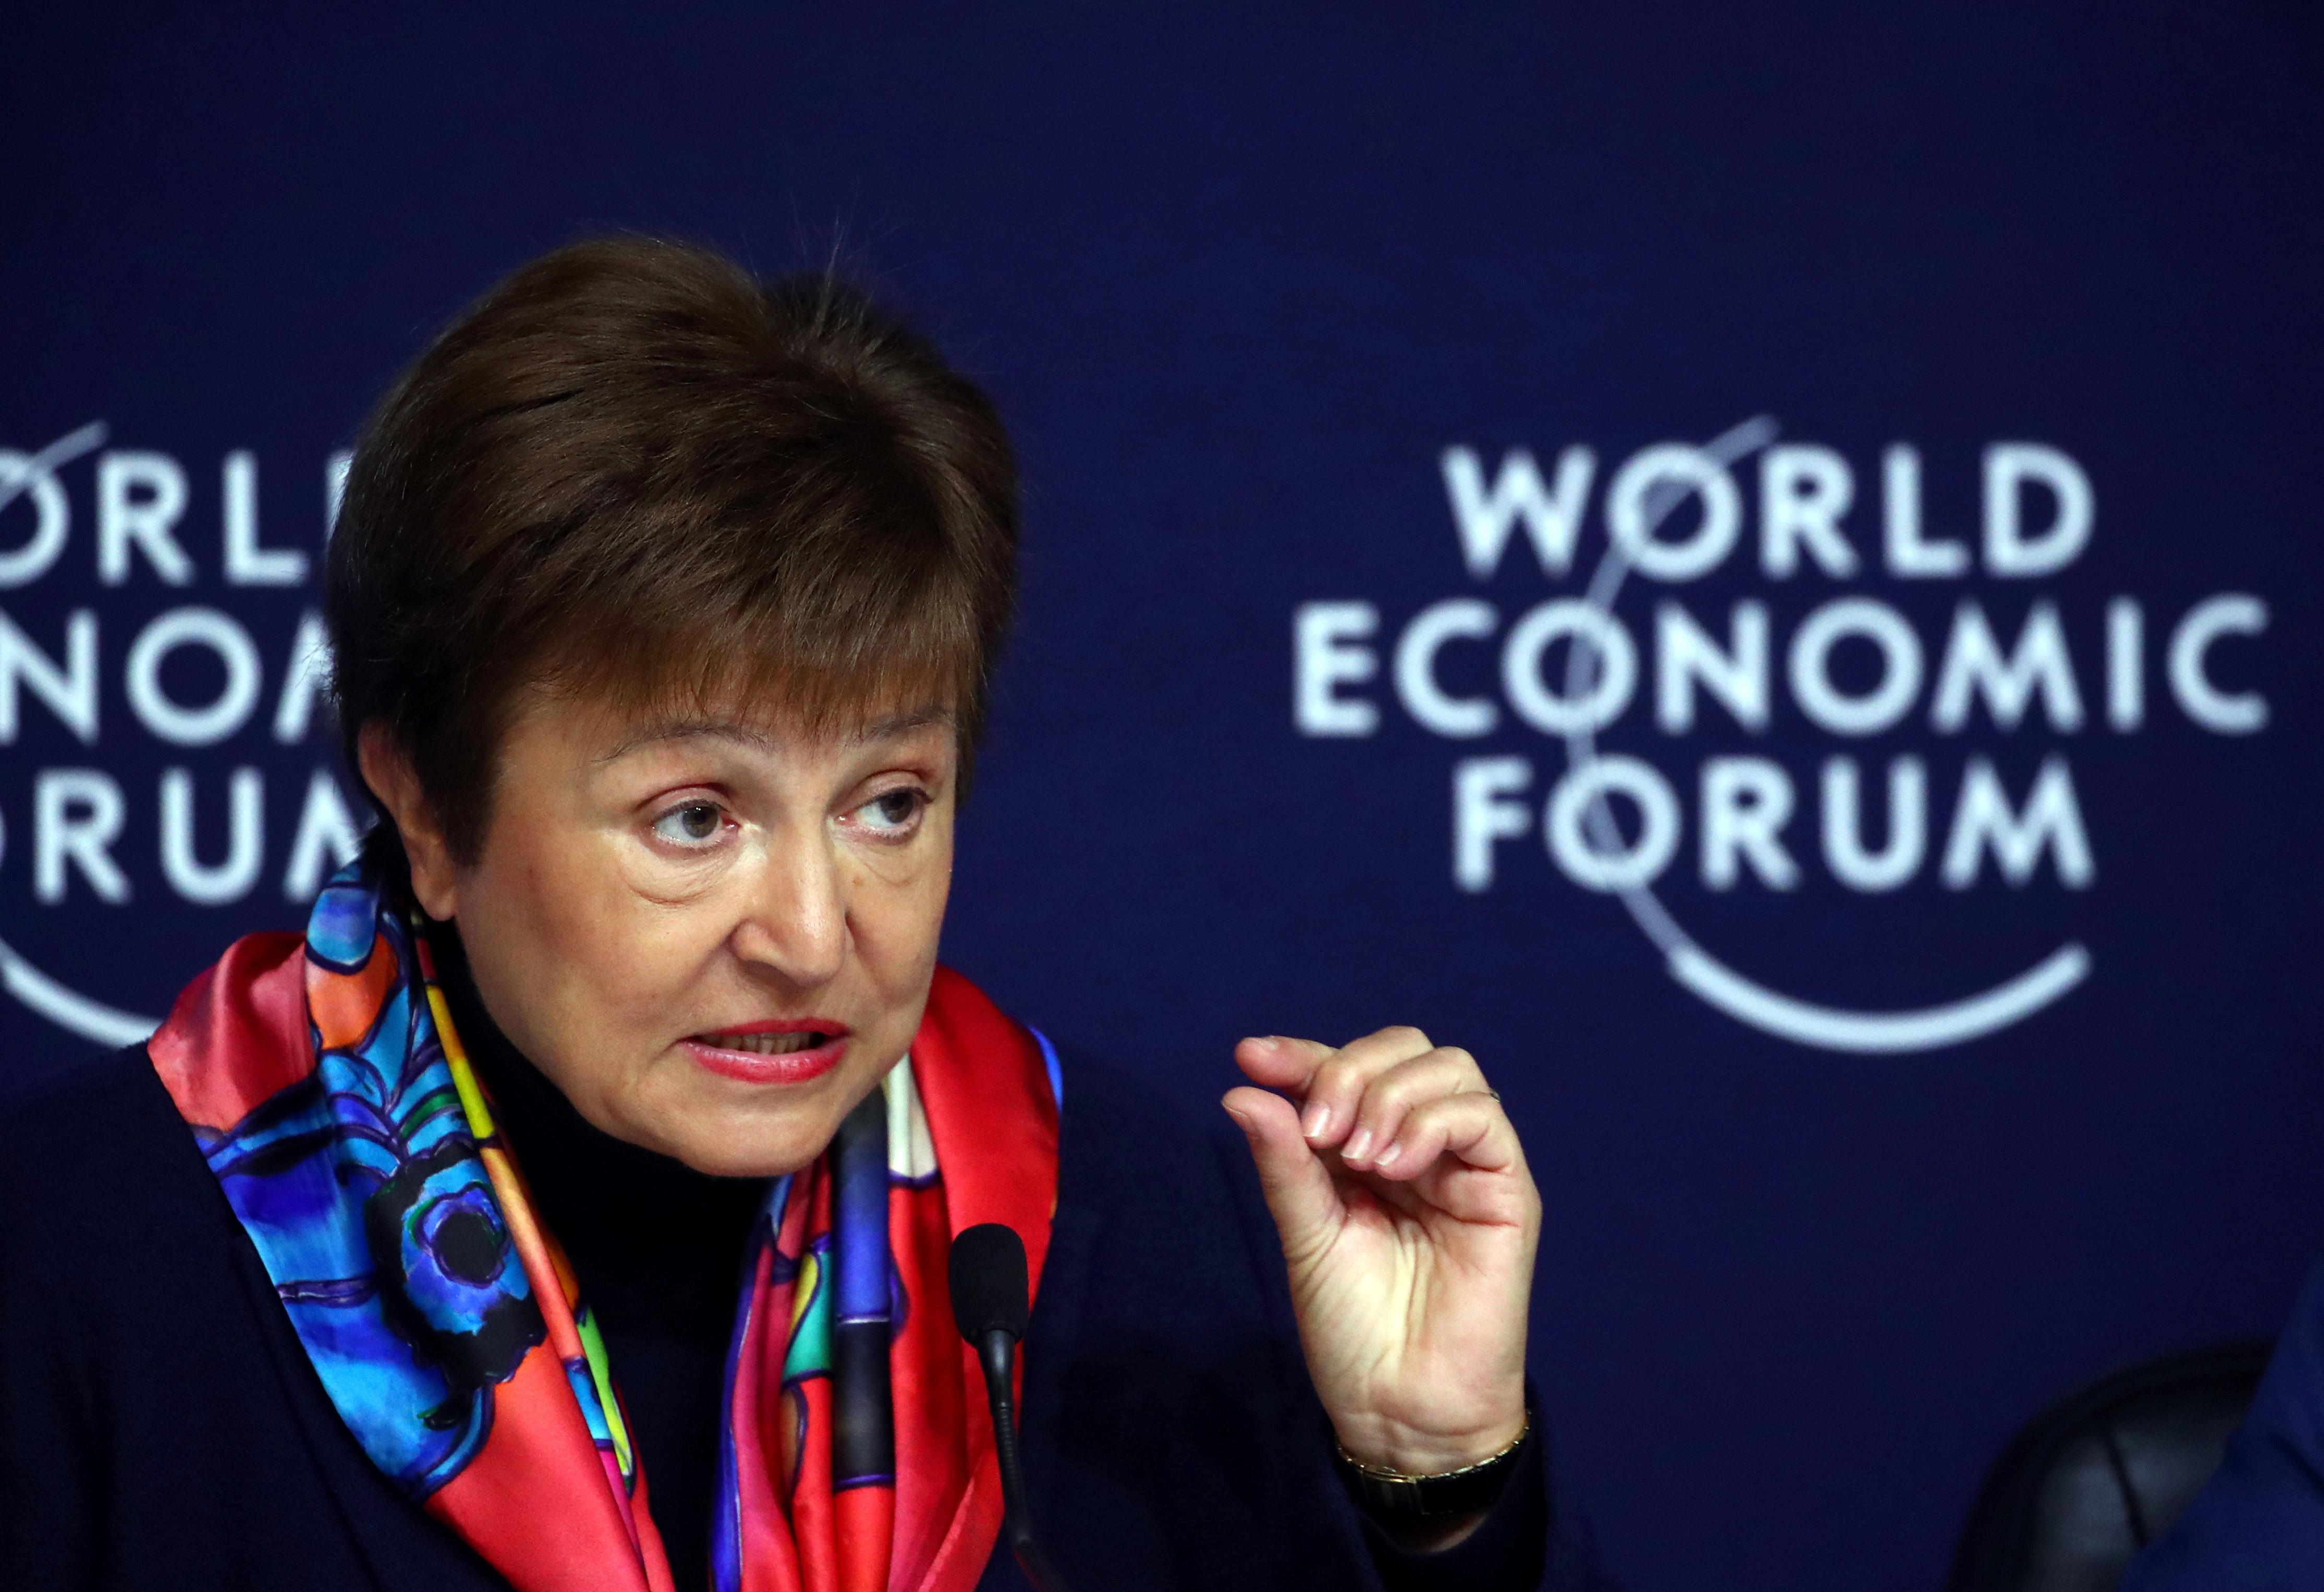 IMF Managing Director Kristalina Georgieva speaks at a news conference ahead of the World Economic Forum (WEF) in Davos, Switzerland January 20, 2020. REUTERS/Denis Balibouse - RC2PJE9CFEVD